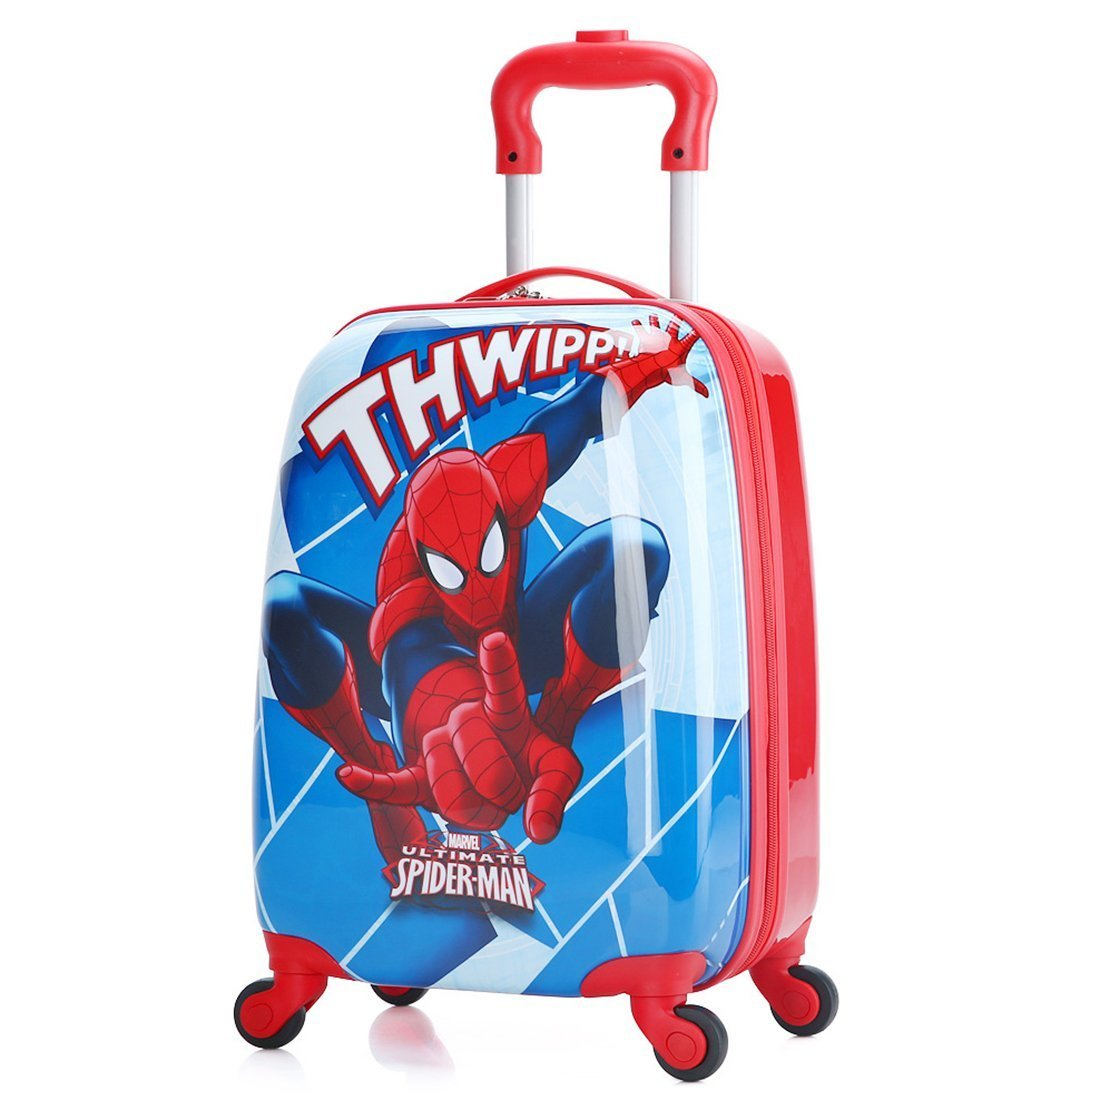 MOREFUN Spiderman Kid's 18 Inch Carry on Luggage Hard Side Spinner Suitcase Travel